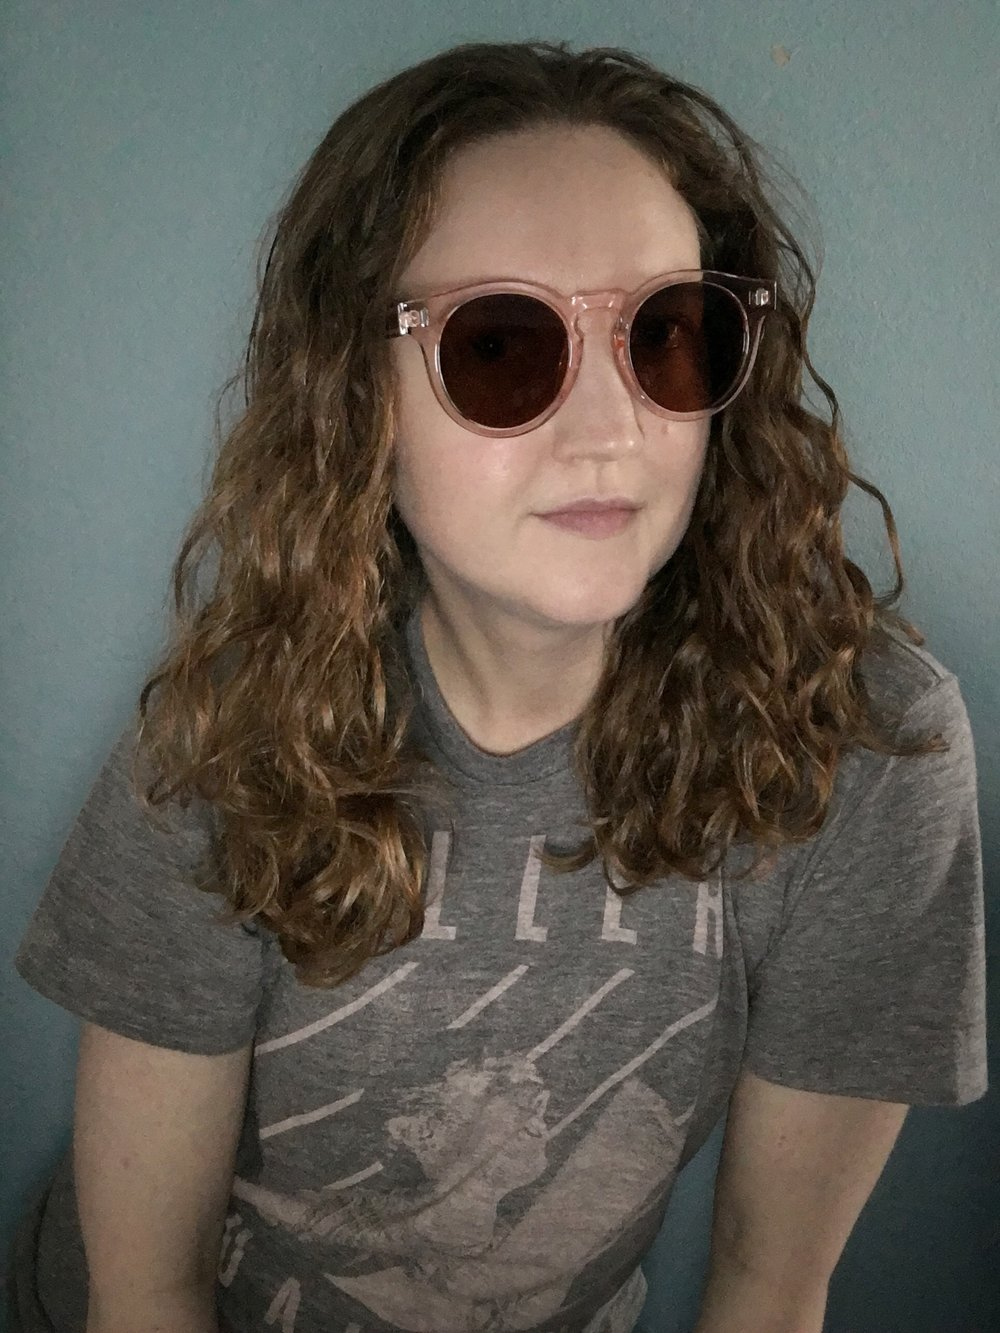 Styling the Spring Box of Style Accessories Bonnie Clyde Pink Sunnies with a grey tee.jpeg